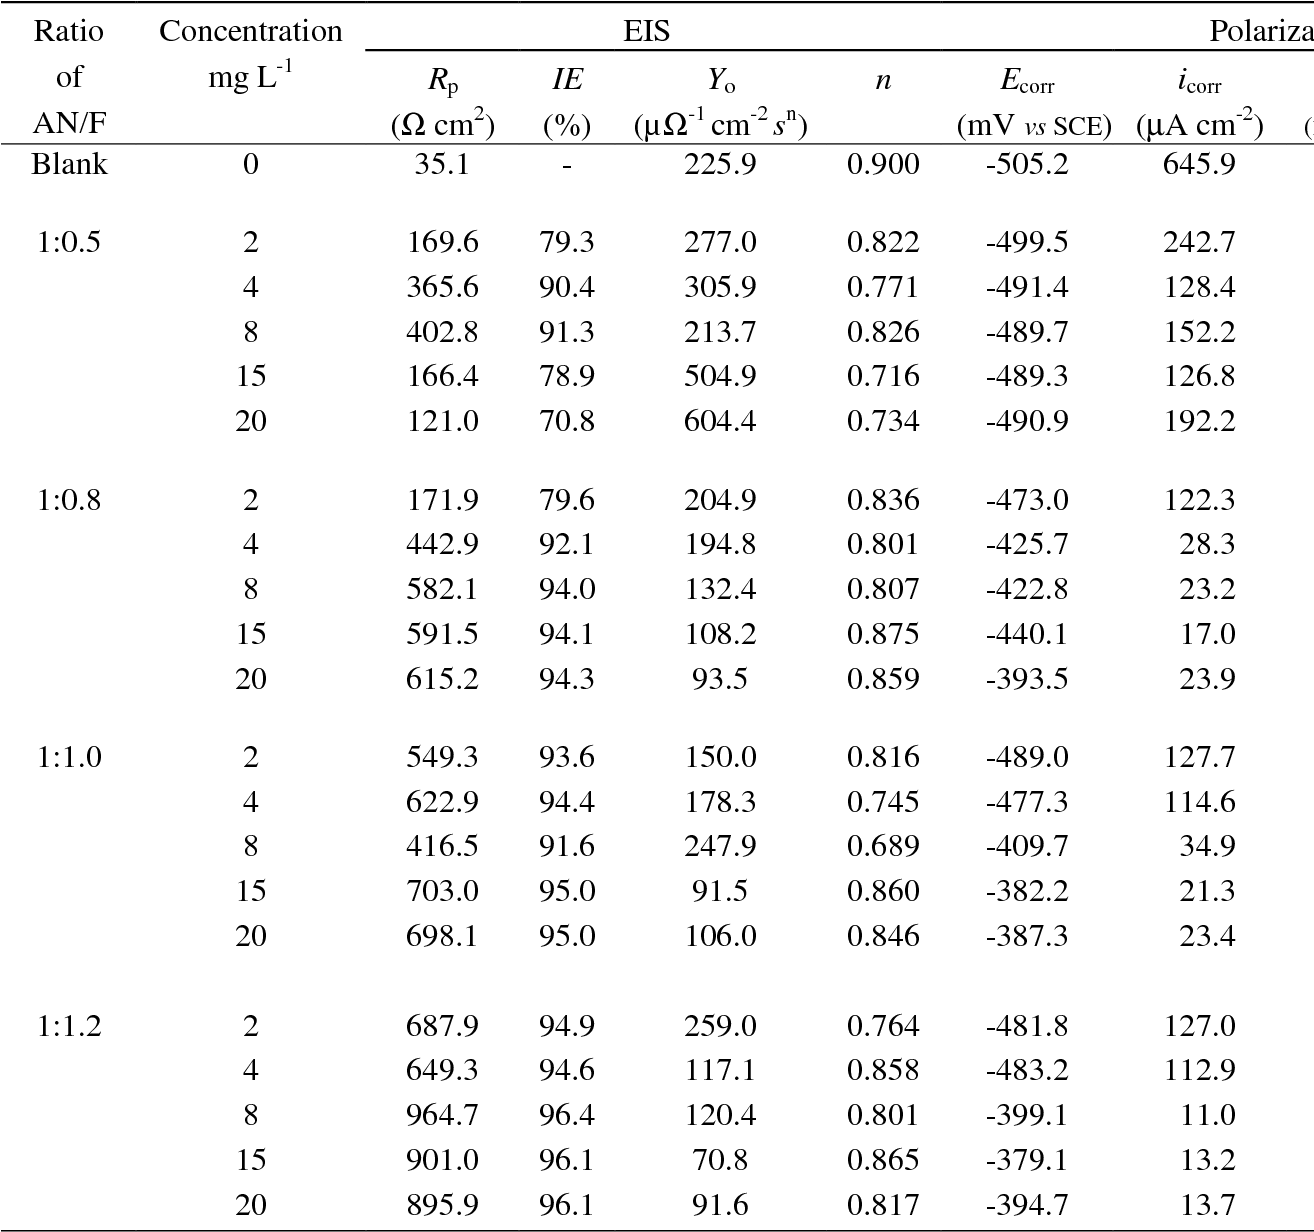 Table 1. Corrosion parameters obtained from electrochemical measurements of Q235 steel in acid media containing various concentrations of aniline-formaldehyde copolymers synthesized with different ratios of aniline (AN) to formaldehyde (F).